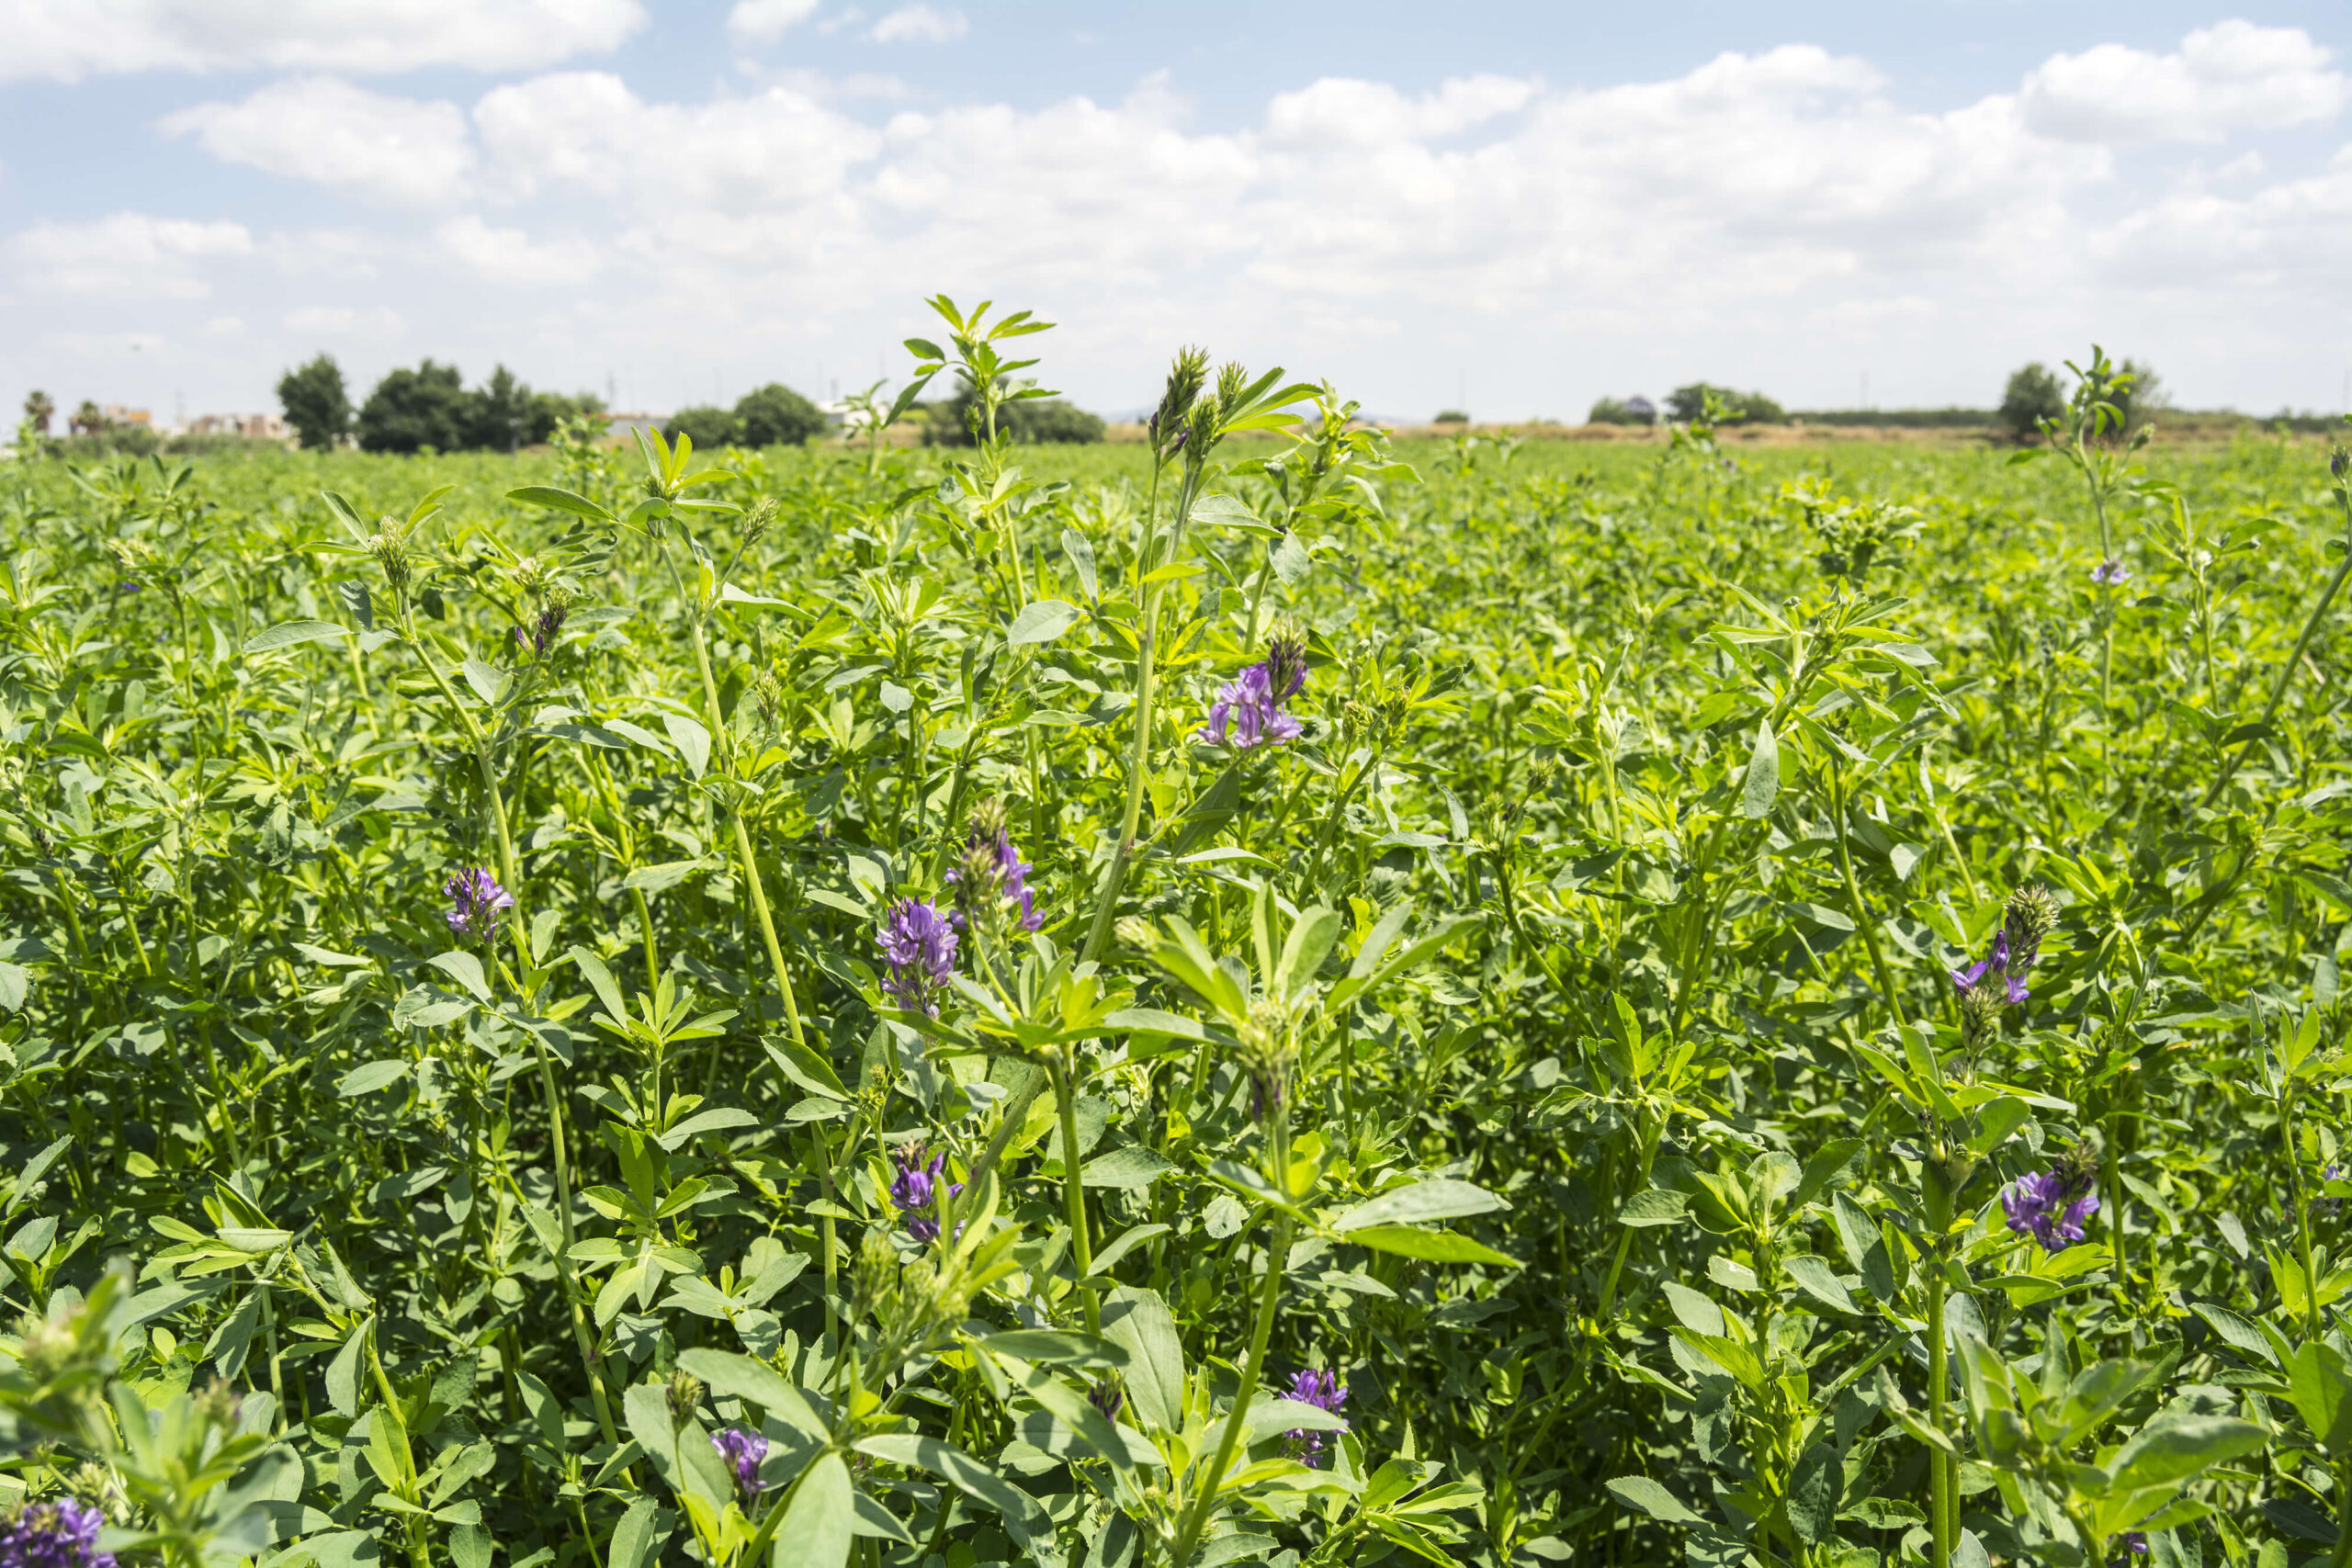 Group G tips, lucerne as a fence line weed control tool & N placement effect on weed growth